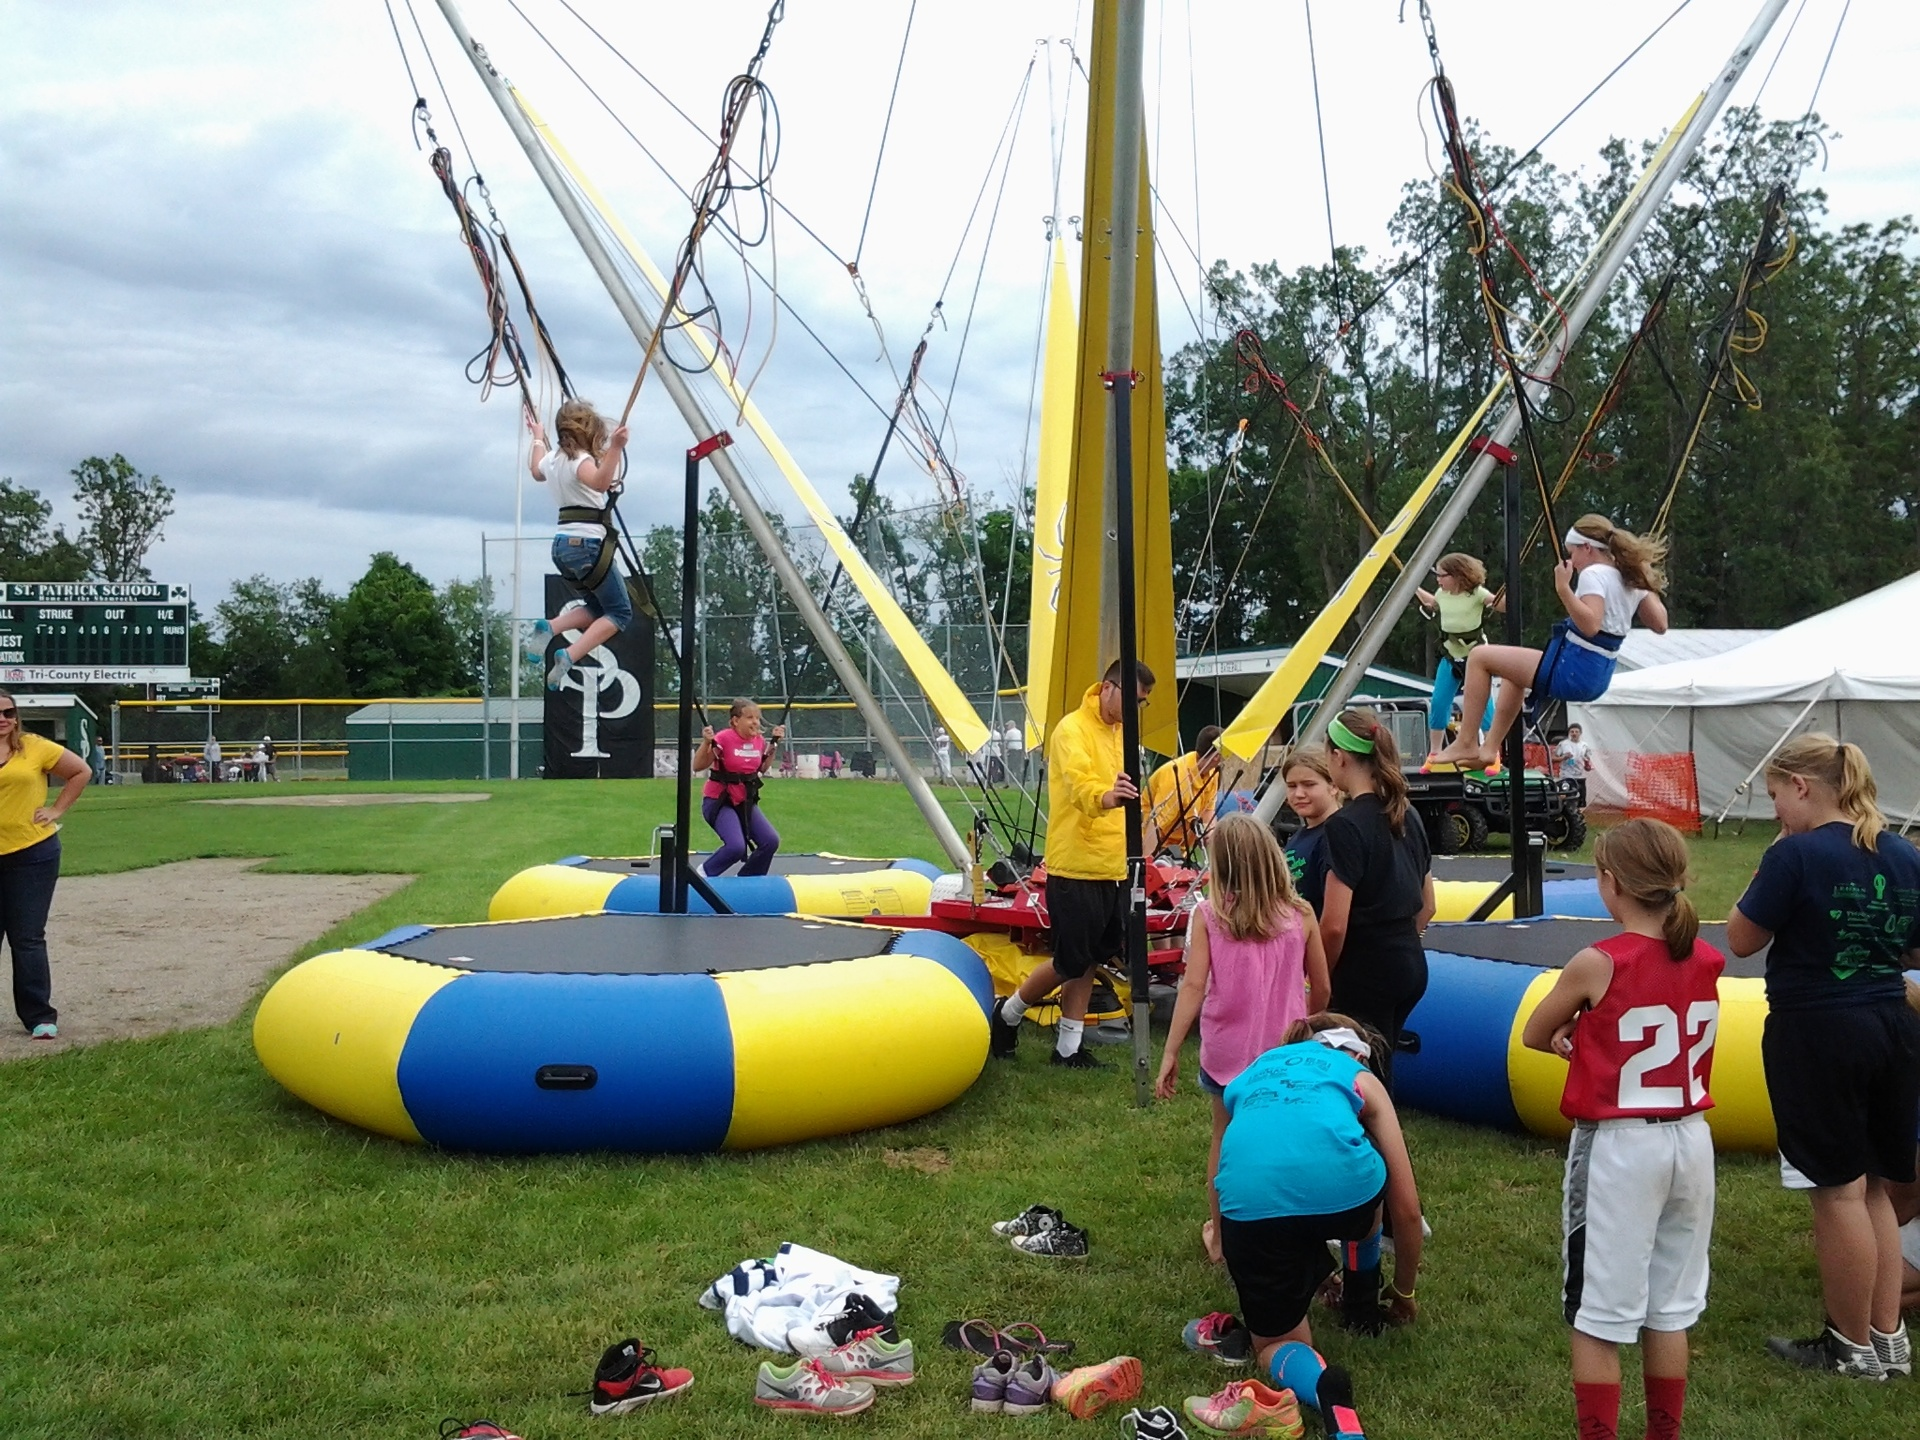 The Spider Bungee kept the kids busy.